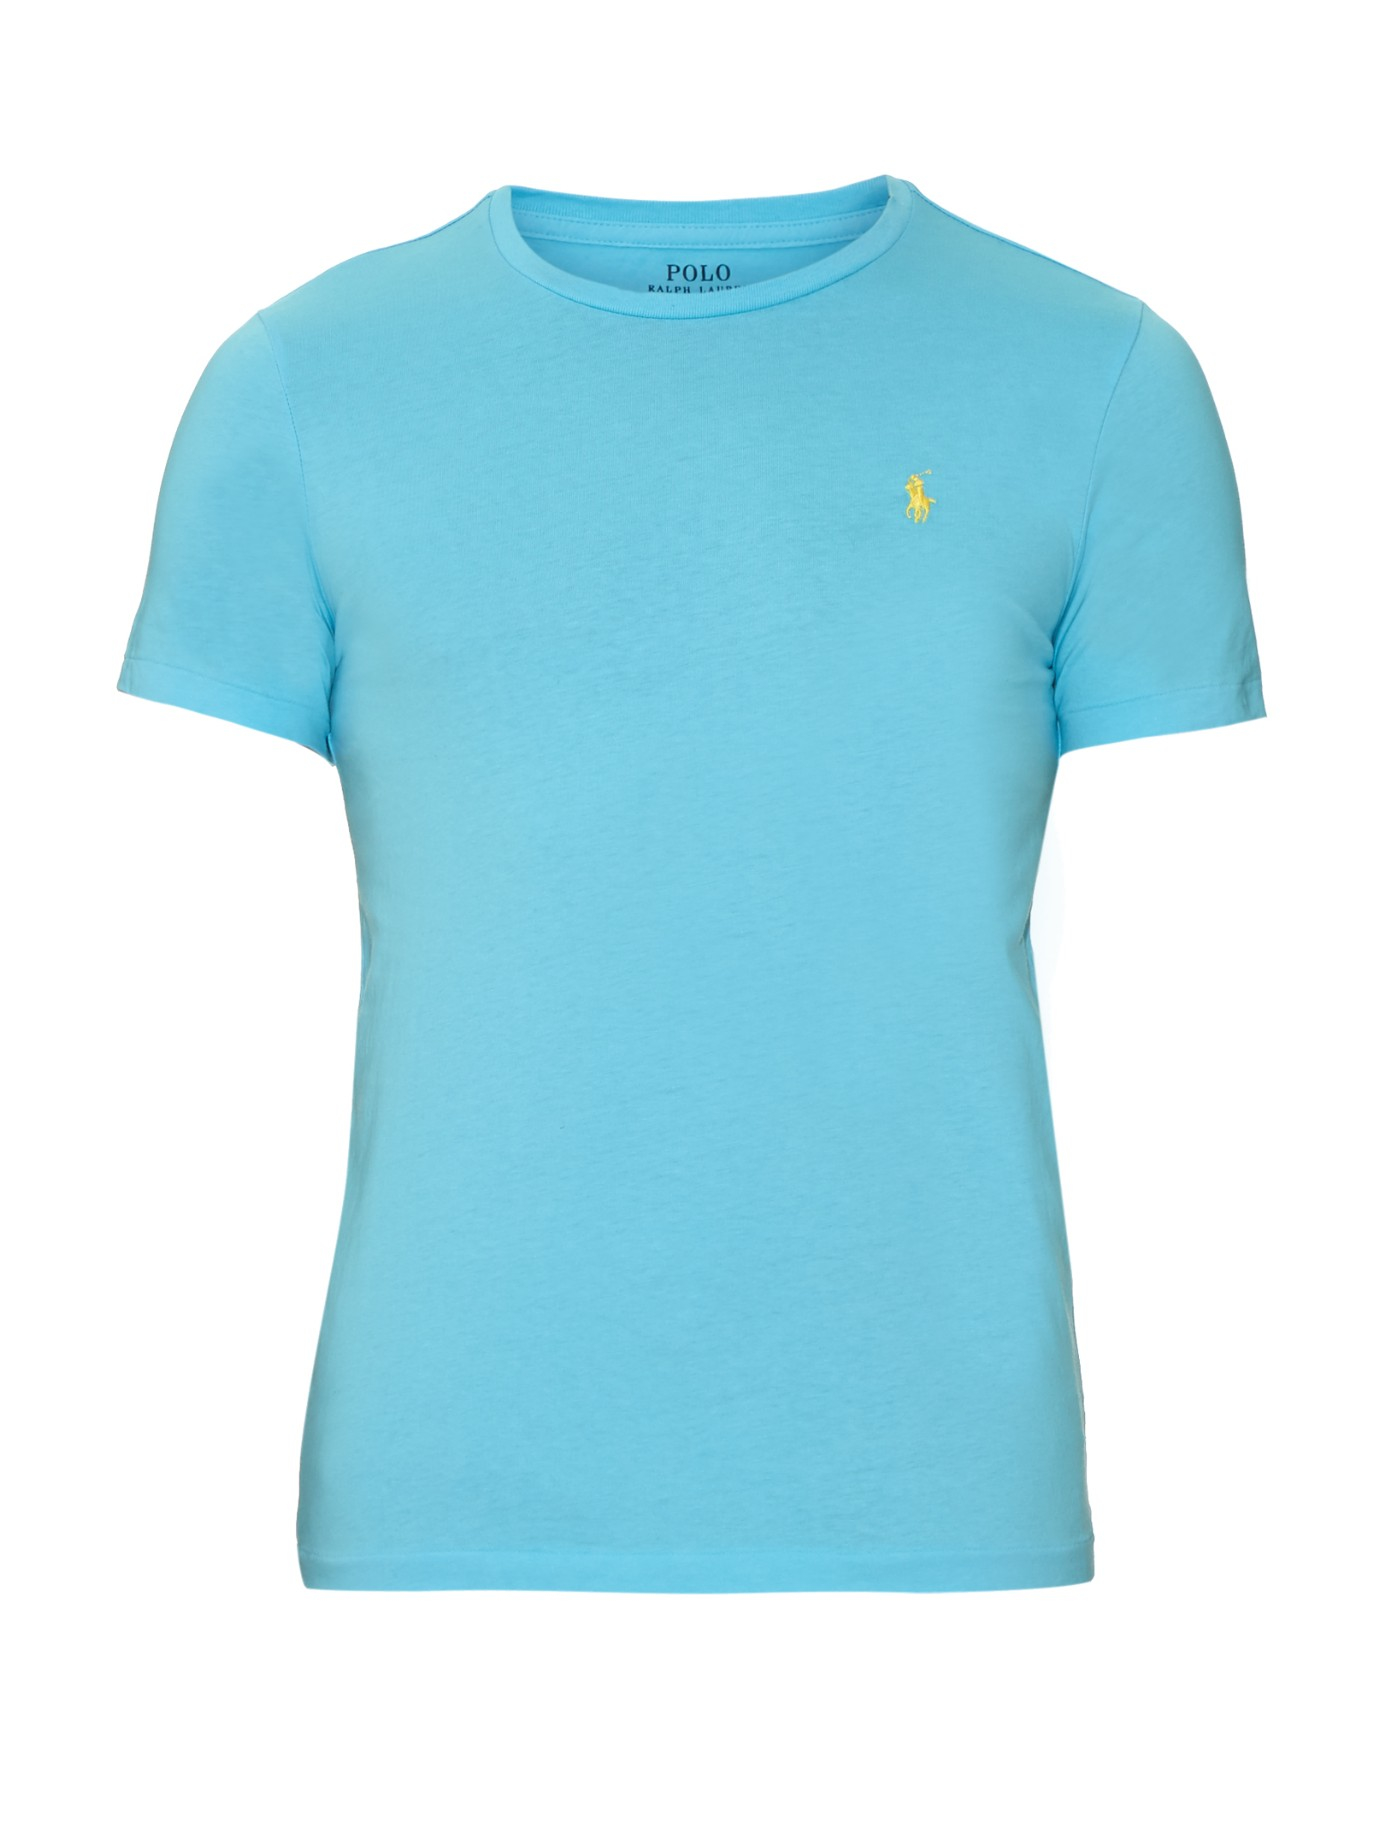 Lyst polo ralph lauren logo embroidered cotton t shirt for Cotton polo shirts with logo